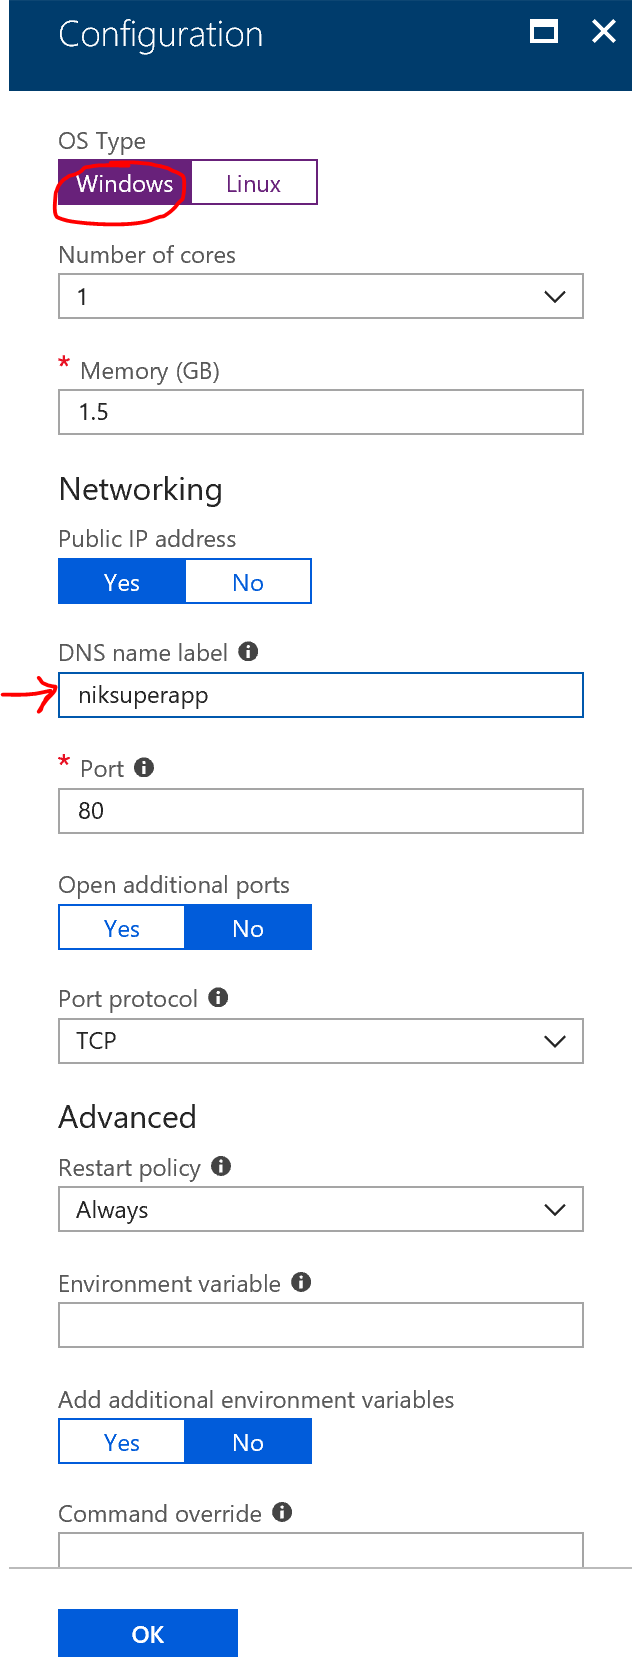 New Azure Container Instance - Configuration